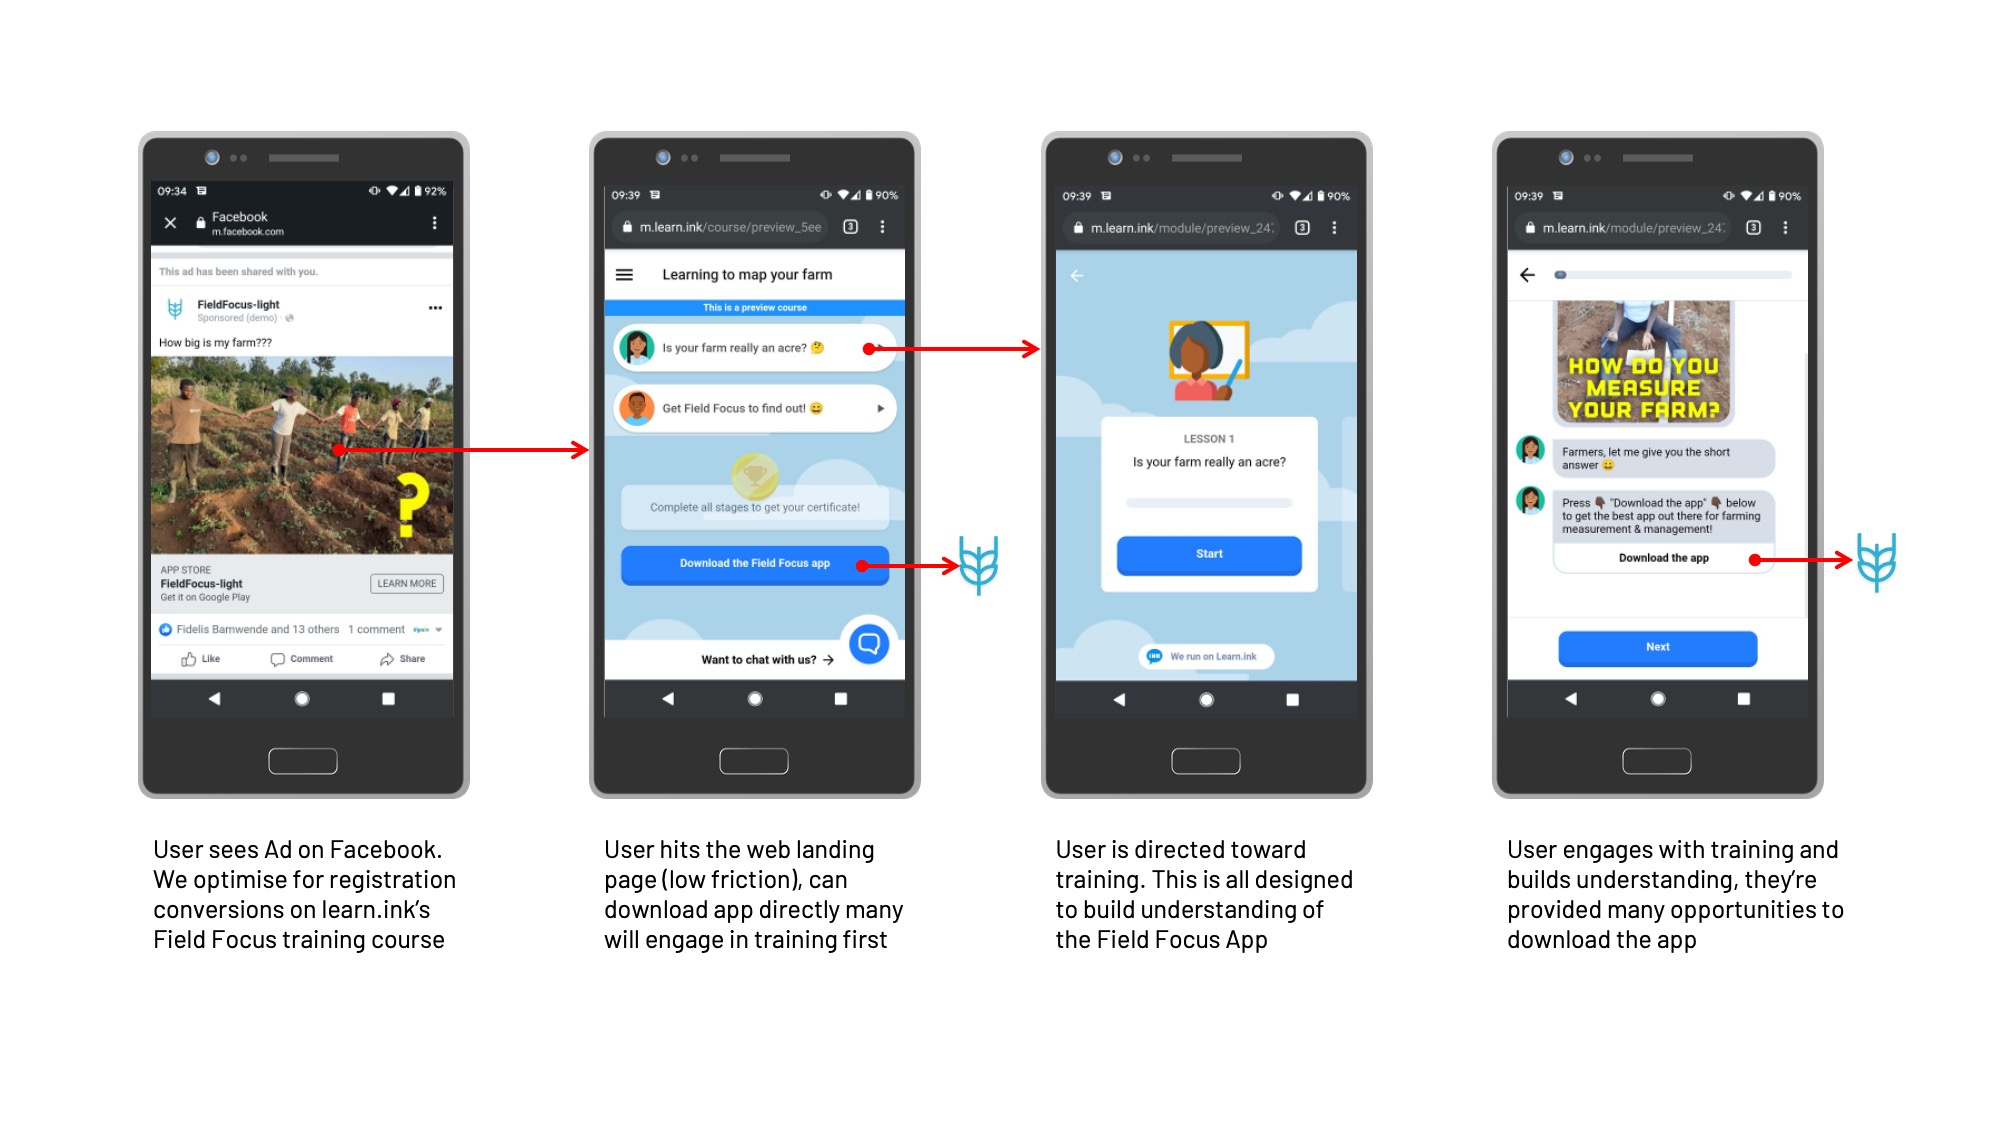 Using digital course to get android app downloads in Kenya